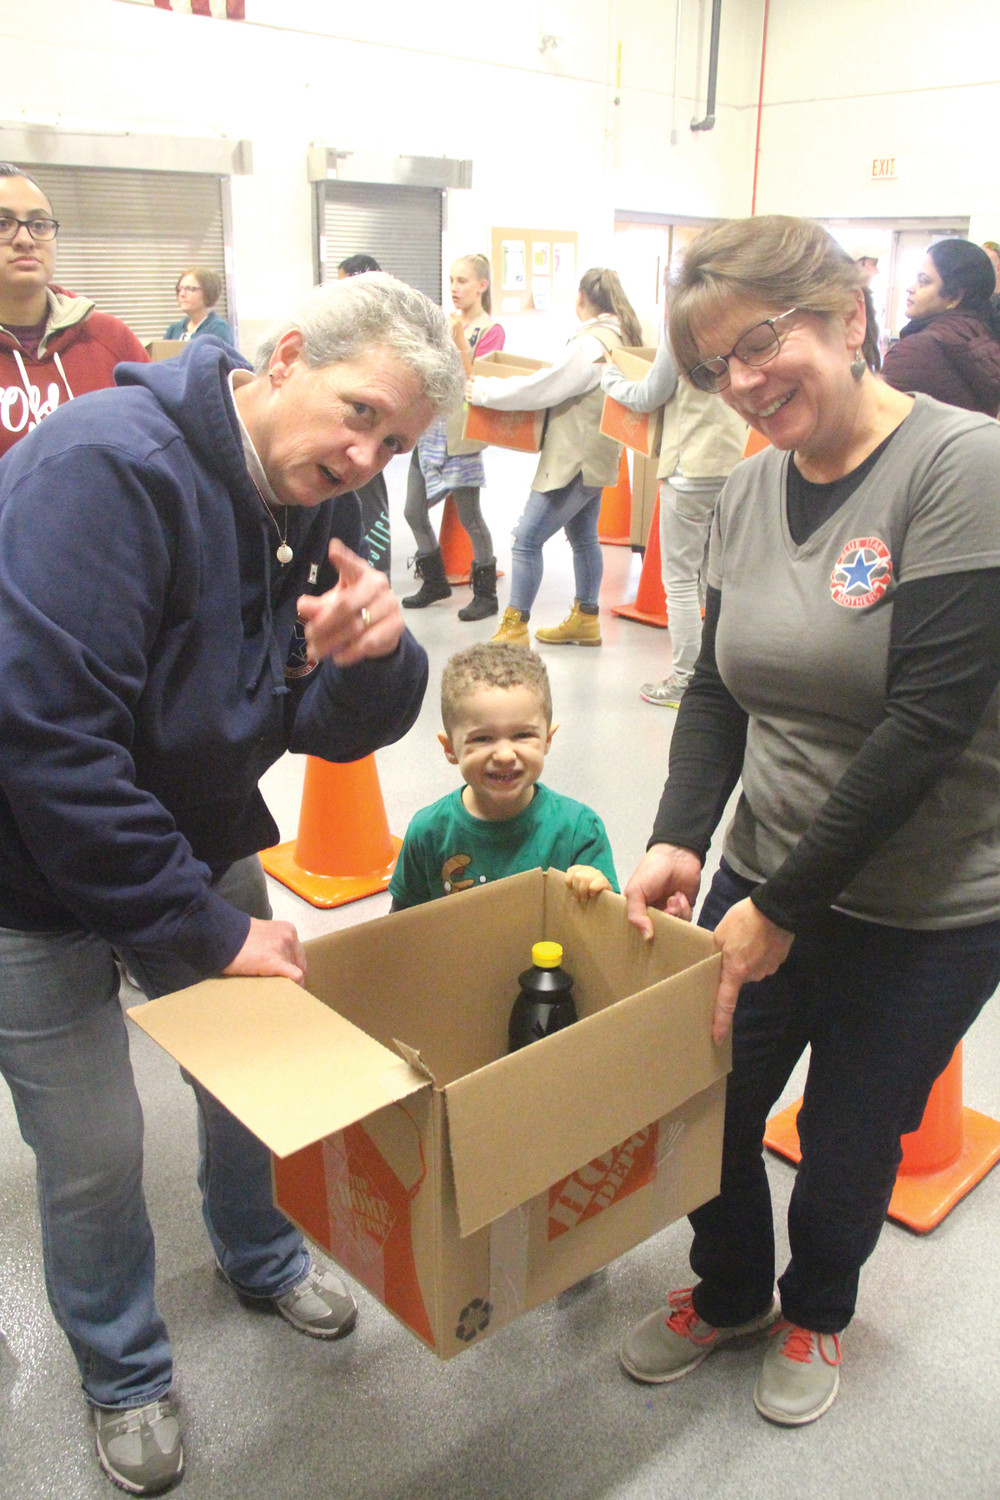 NEVER TOO YOUNG: This was the second year for Rylan Sroka to participate in the program. He was there with his cousin, Rhonda Zoiehl of Coventry, and Denise Marcinko of Cranston.